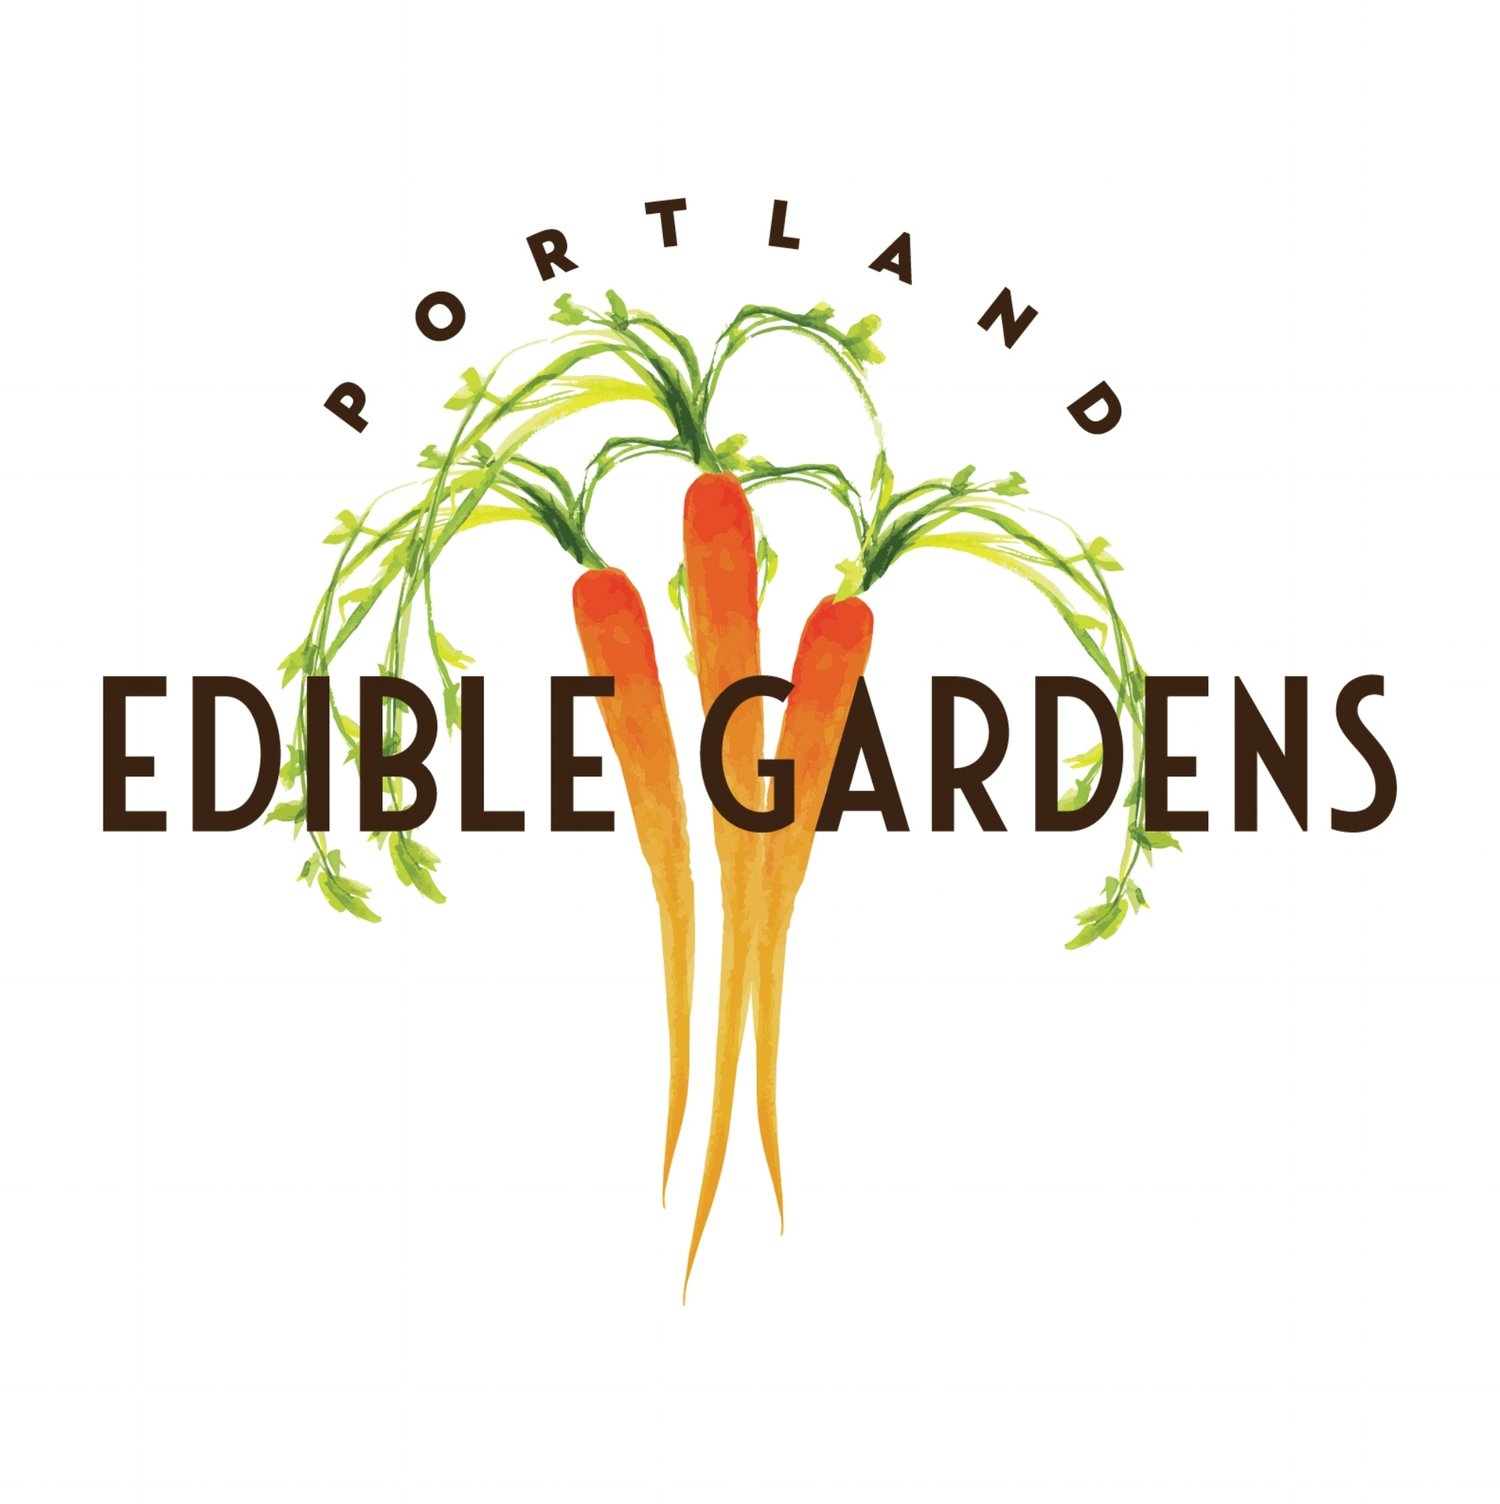 Portland Edible Gardens: Raised Garden Beds, Edible Landscaping, and Vegetable Garden Help in Portland, OR